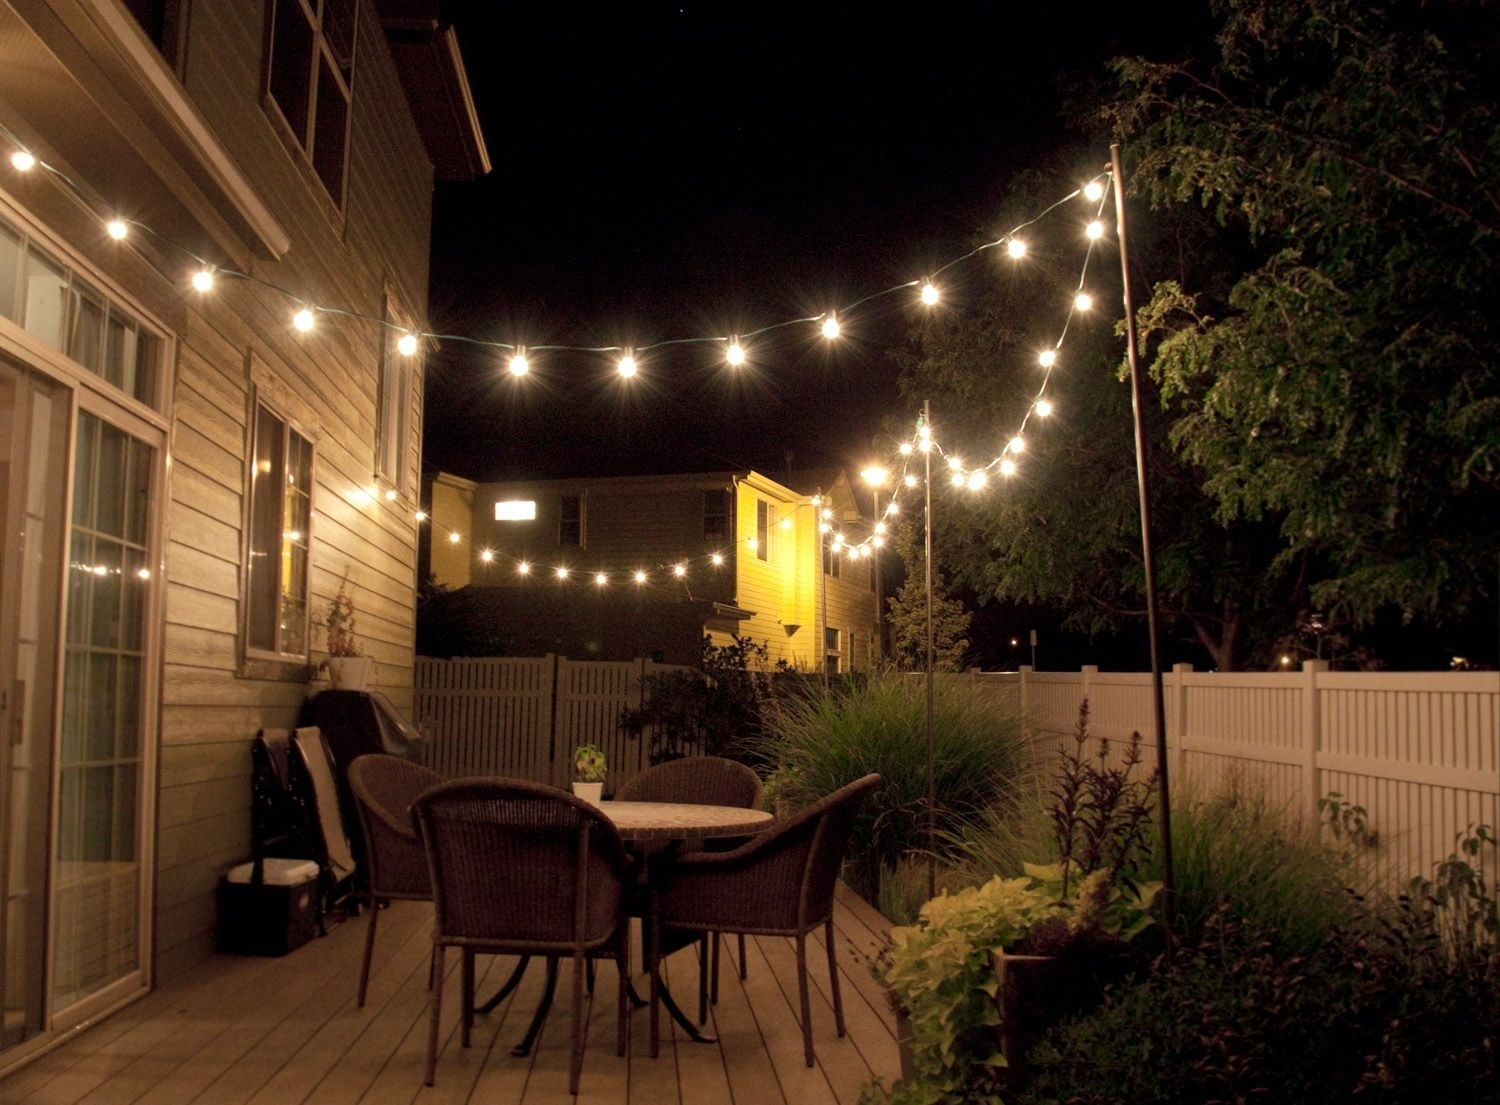 How To Make Inexpensive Poles To Hang String Lights On – Café Style Inside Hanging Outdoor Flood Lights (View 13 of 15)